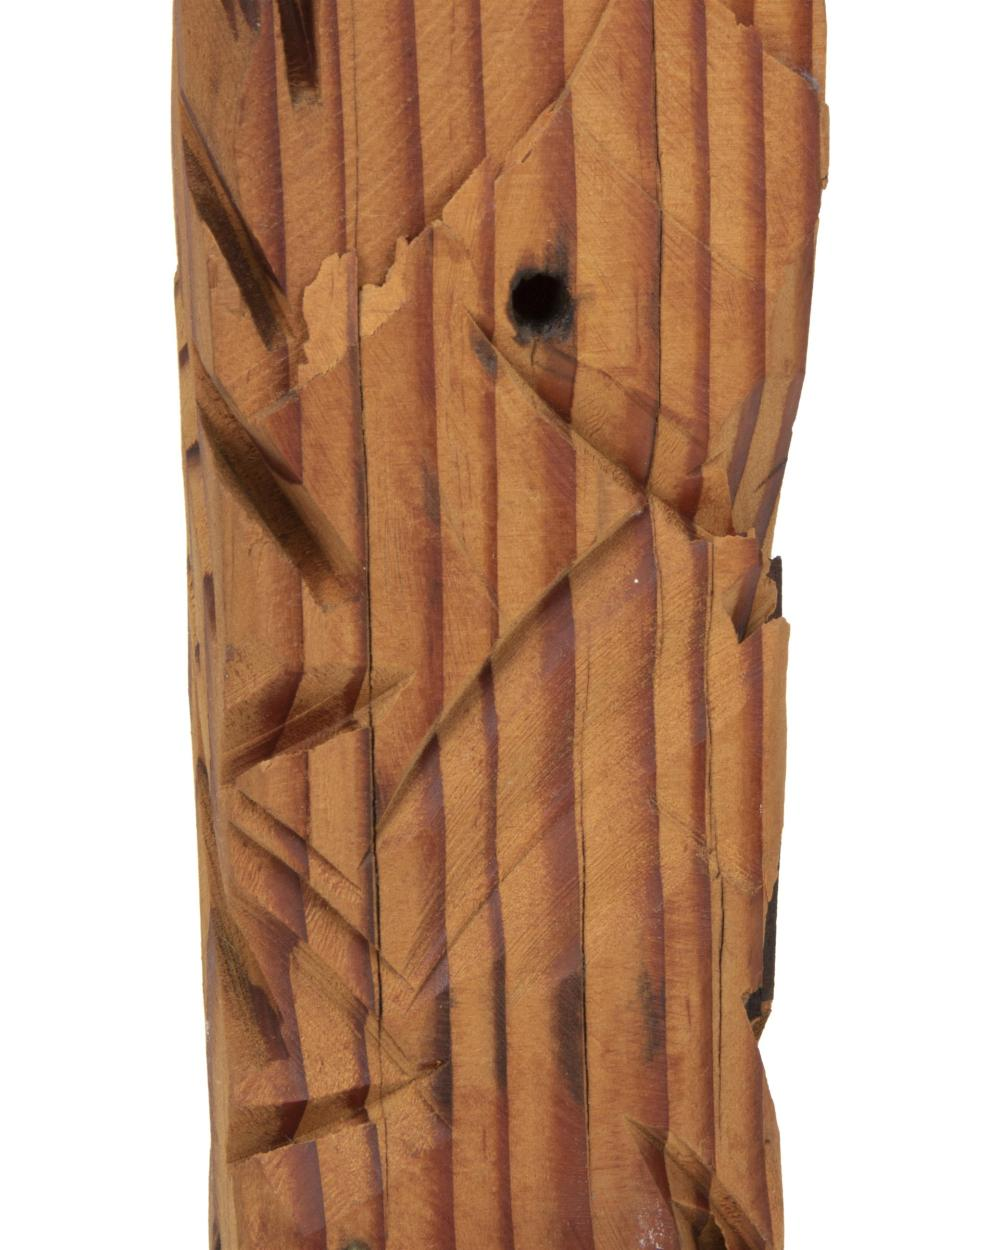 Jim Bess, (20th Century, American), Wooden sculpture, Wood and steel, 79